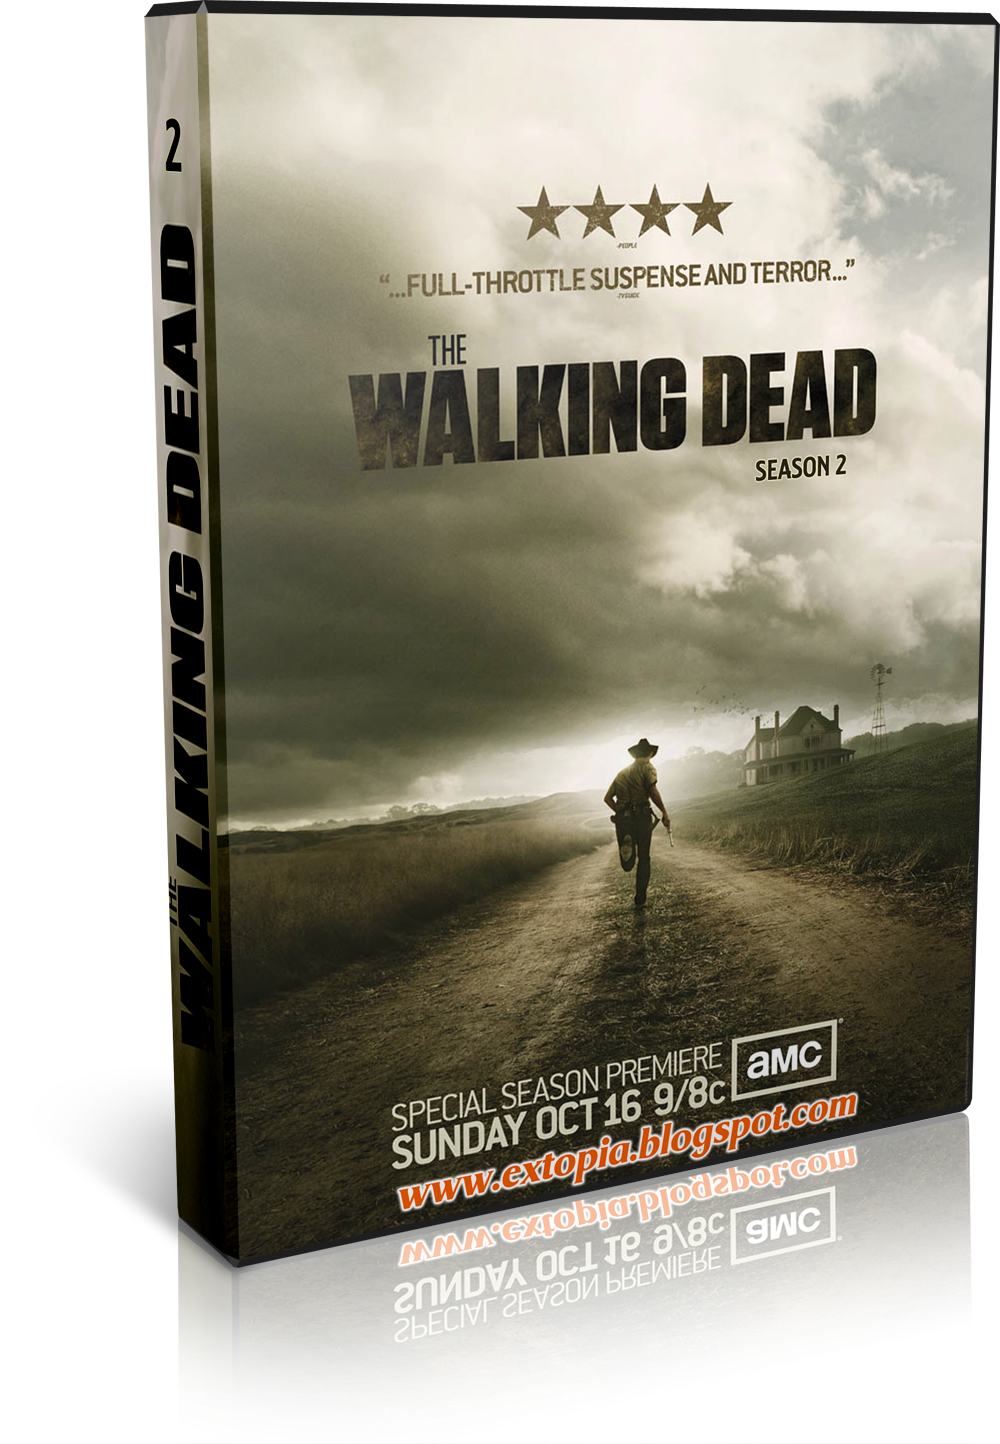 The Walking Dead S02E05 HDTV XviD-ASAP